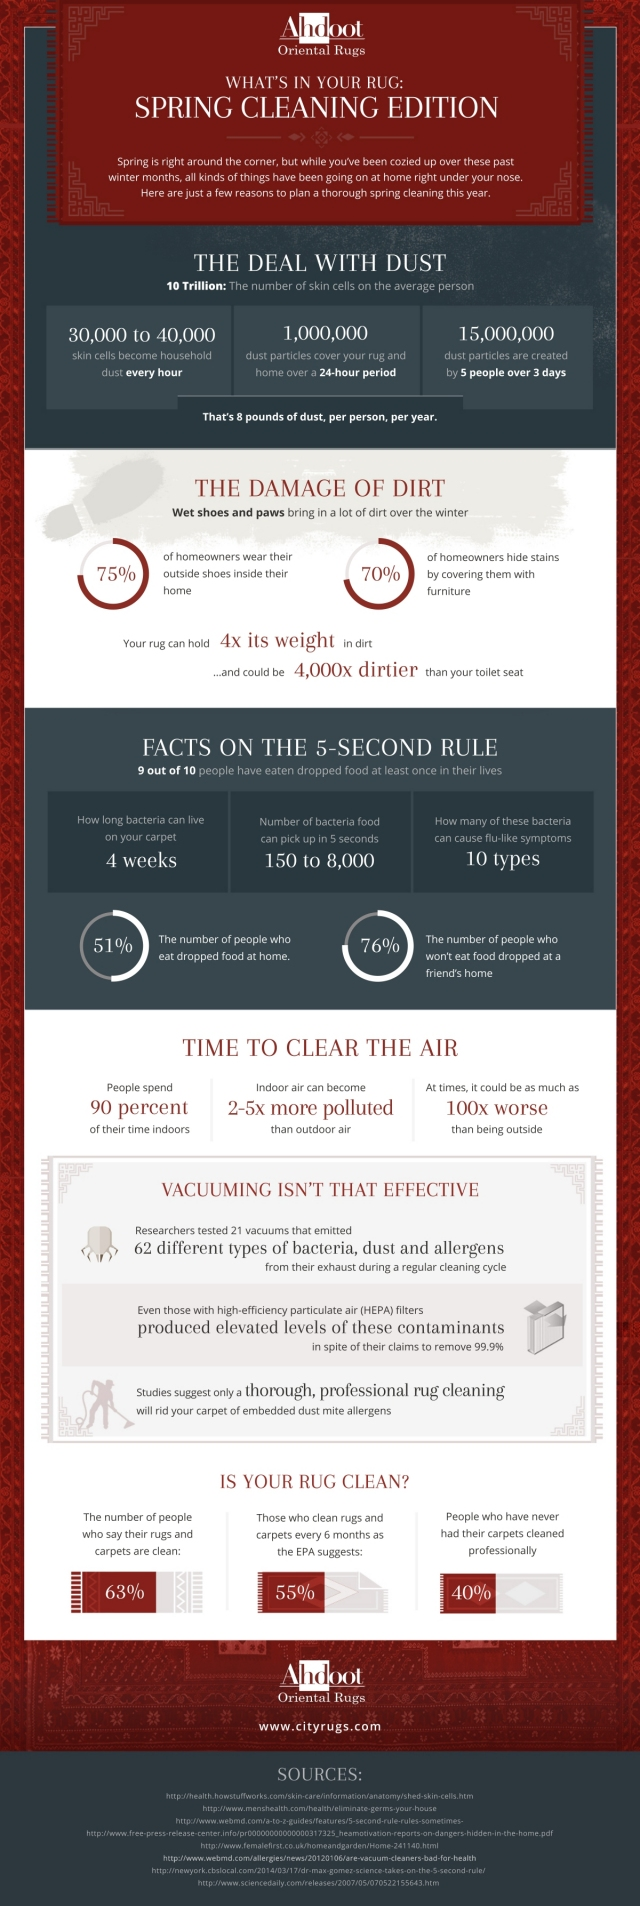 Ahdoot-Spring-Cleaning-Infographic2